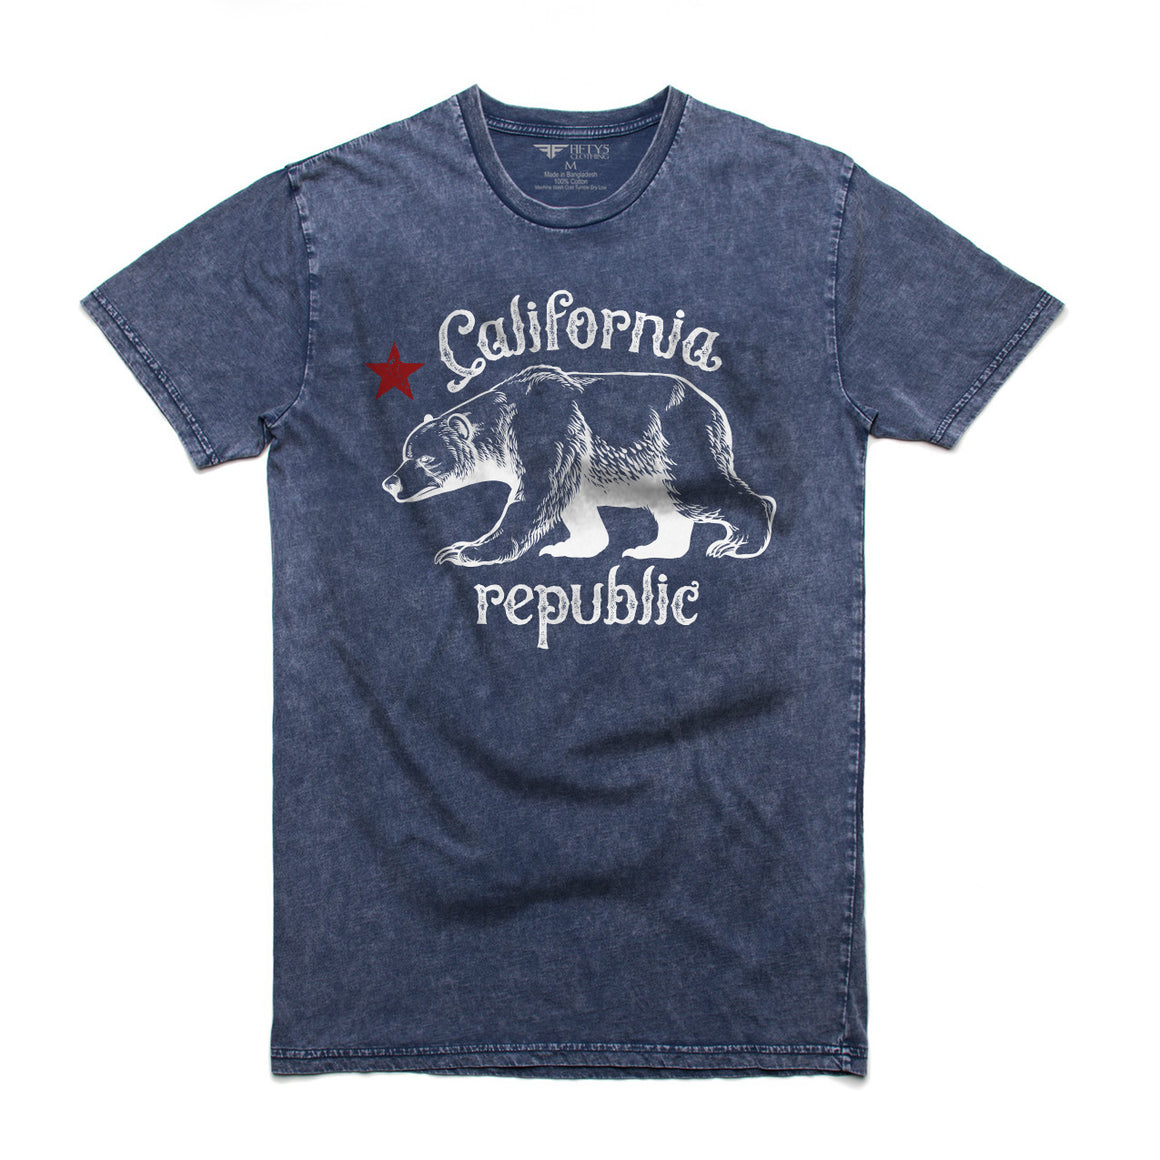 Vintage California Republic Men's Stone Wash T Shirt